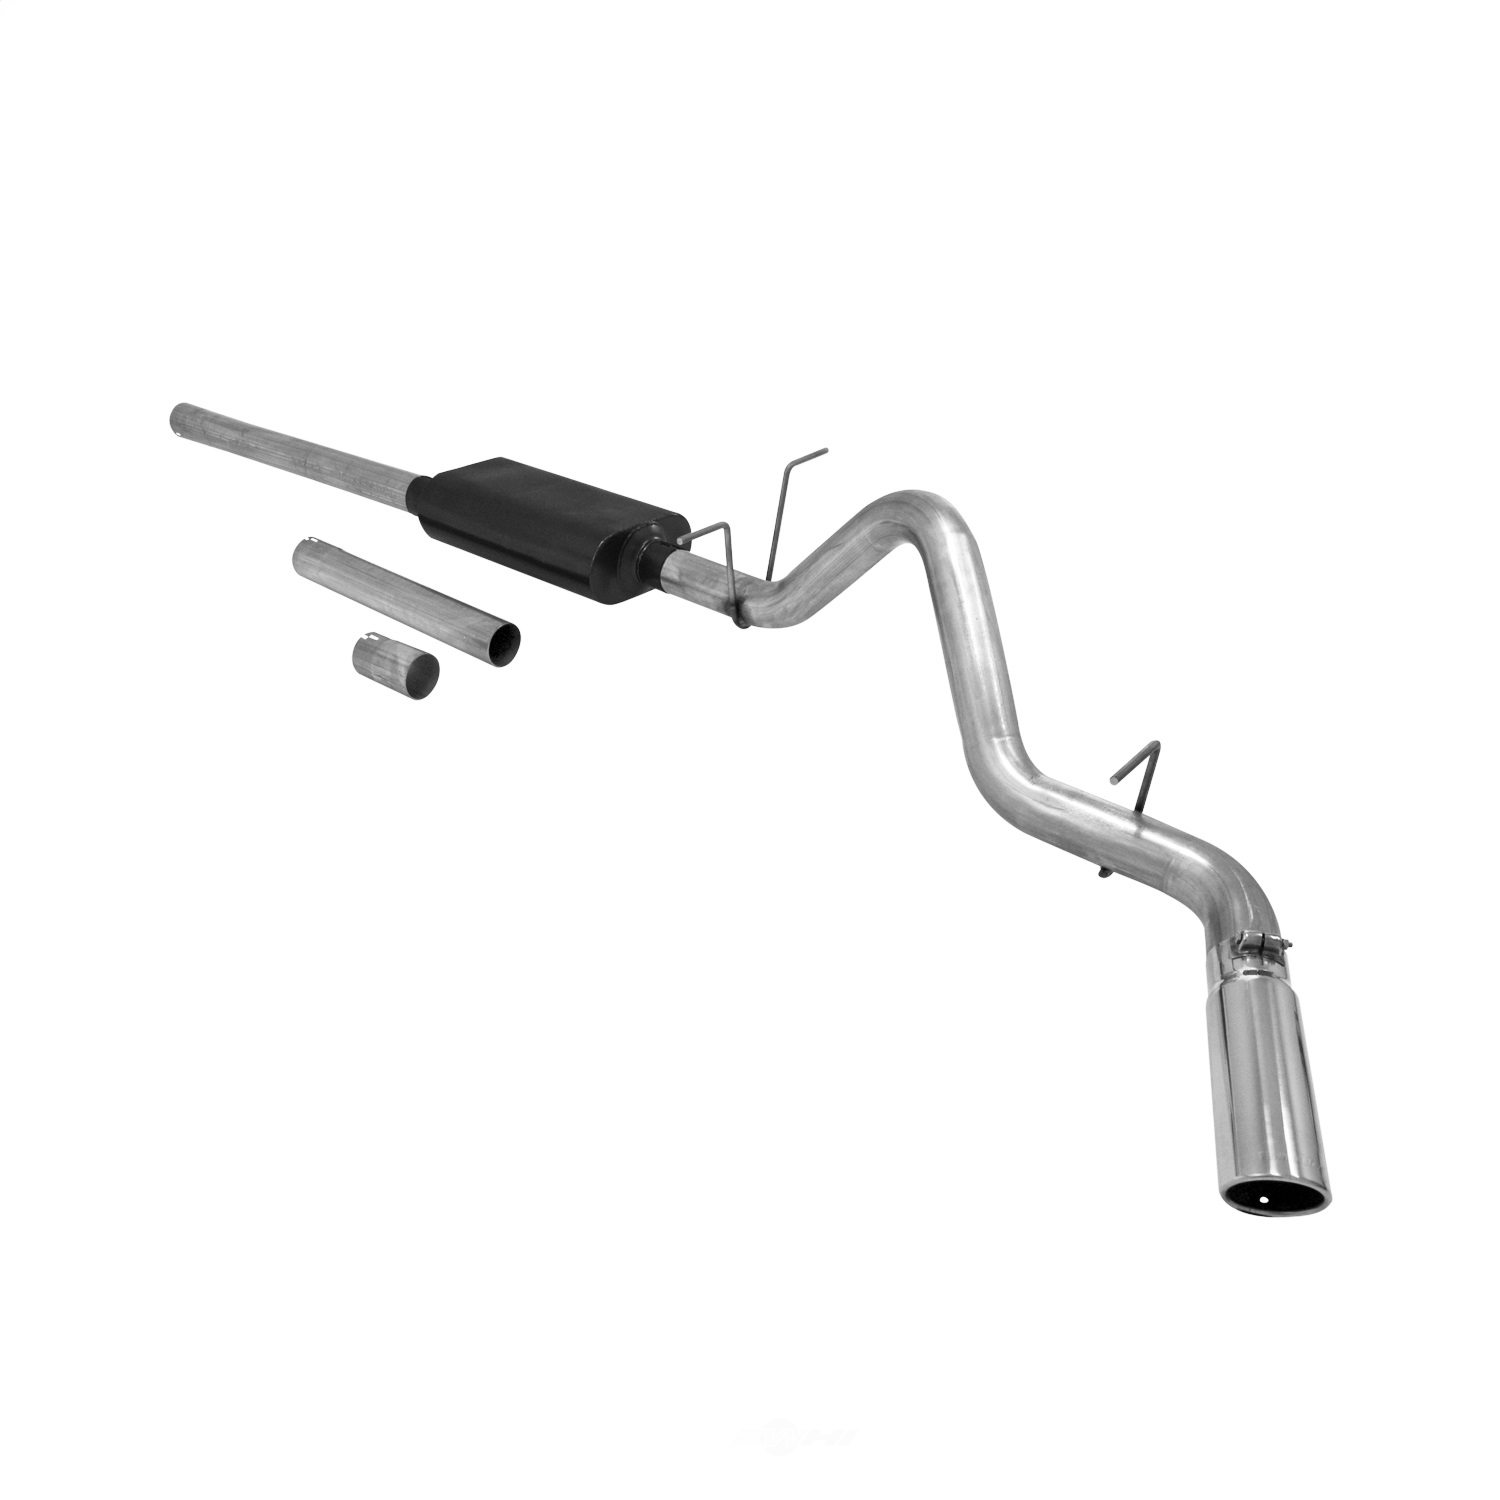 FLOWMASTER - Force II Cat Back Exhaust System Kit - FLO 817523